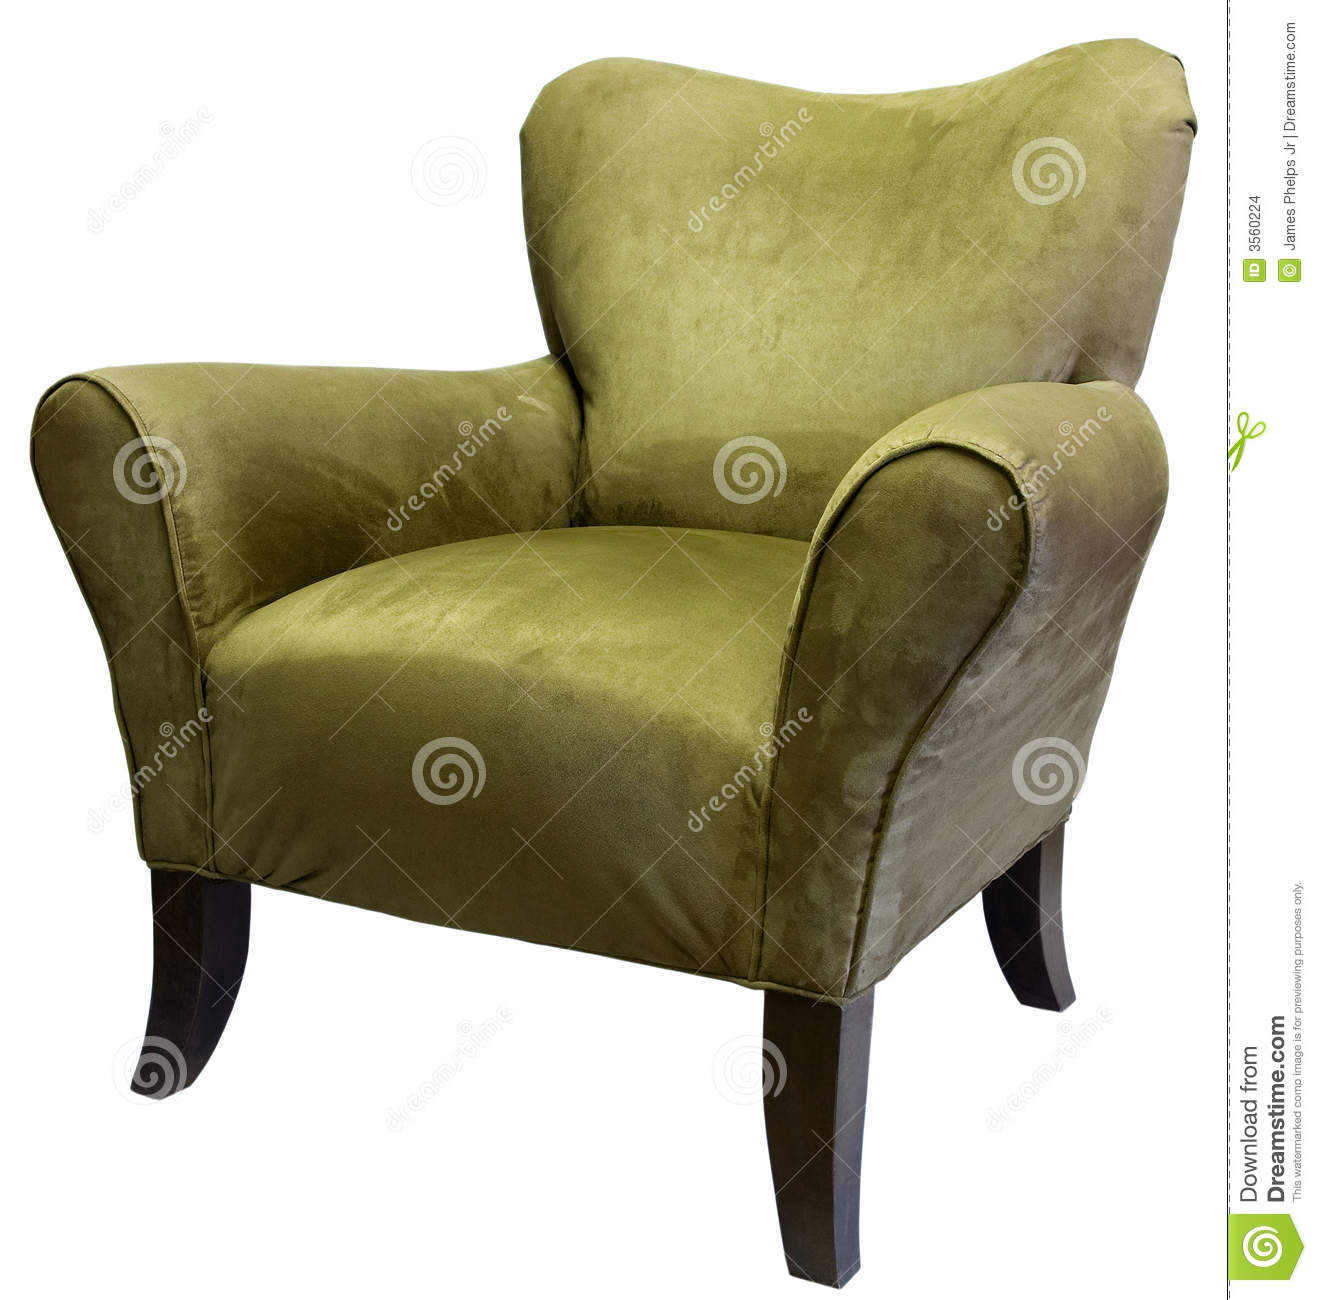 326 Accent Chair Photos Free Royalty Free Stock Photos From Dreamstime